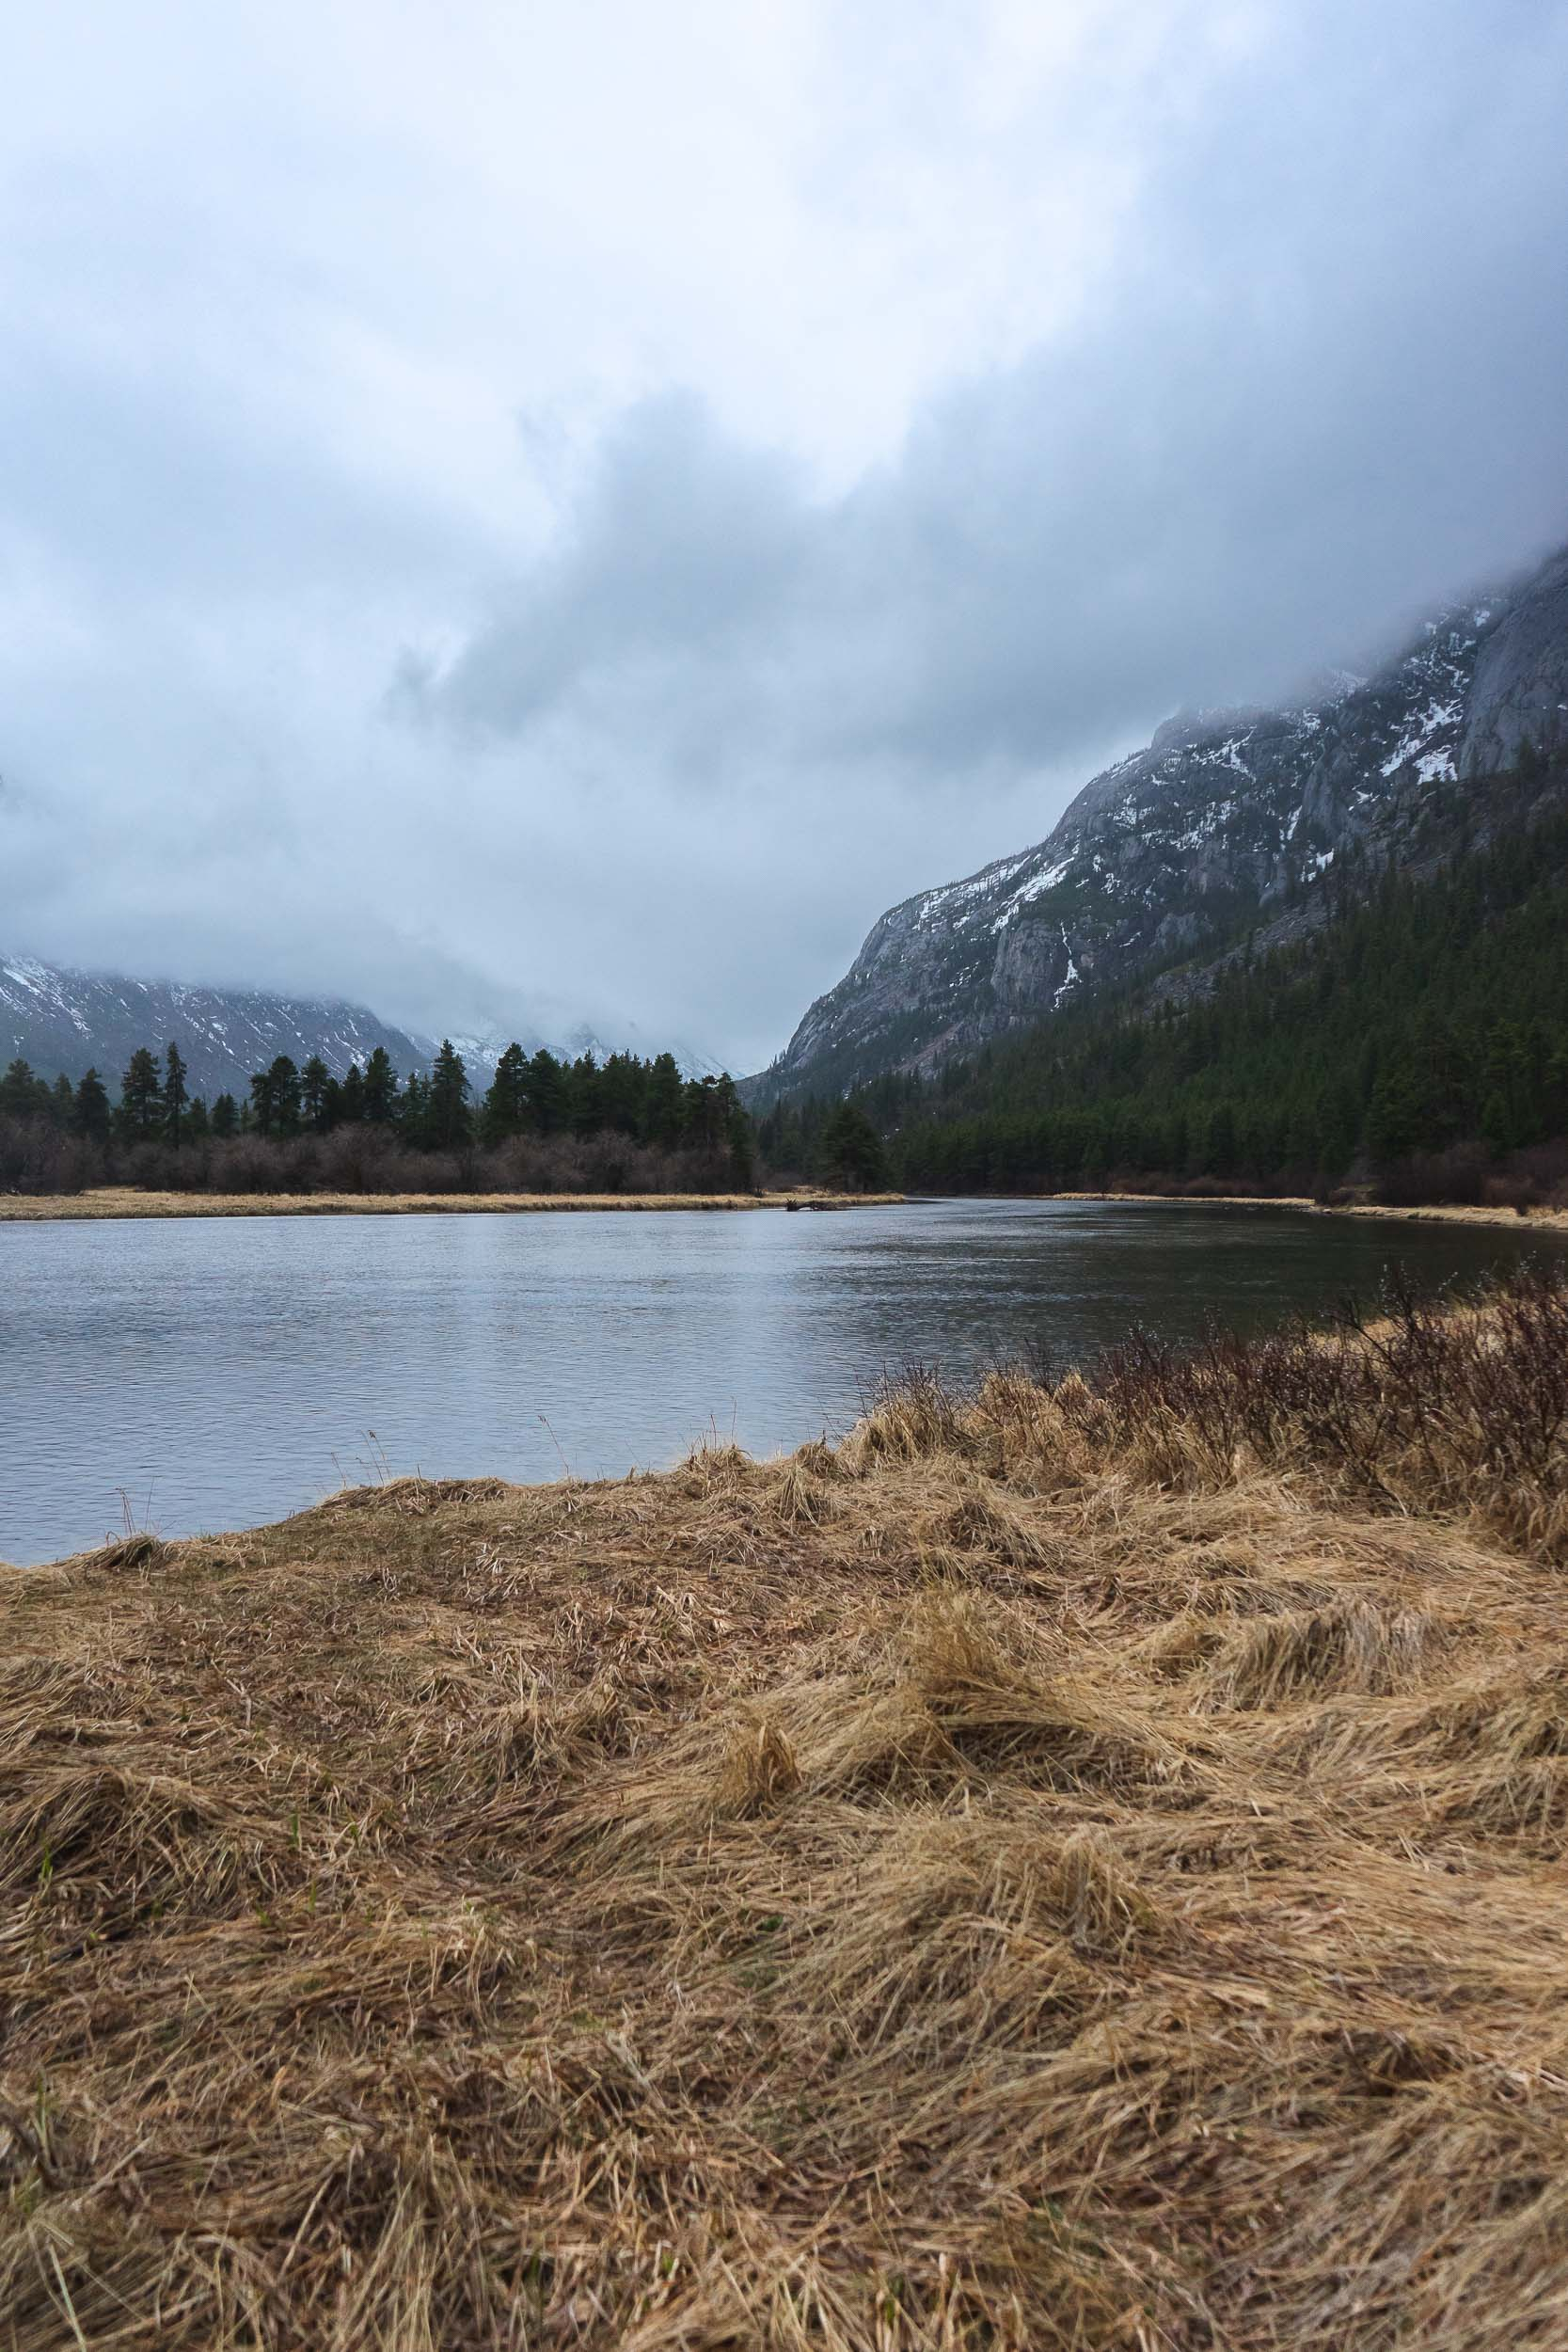 Sioux Charley Lake in the Absaroka Beartooth Wilderness. A moderately trafficked easy hike great for families. Enjoy waterfalls, granite mountains, wide open fields, and breathtaking views.